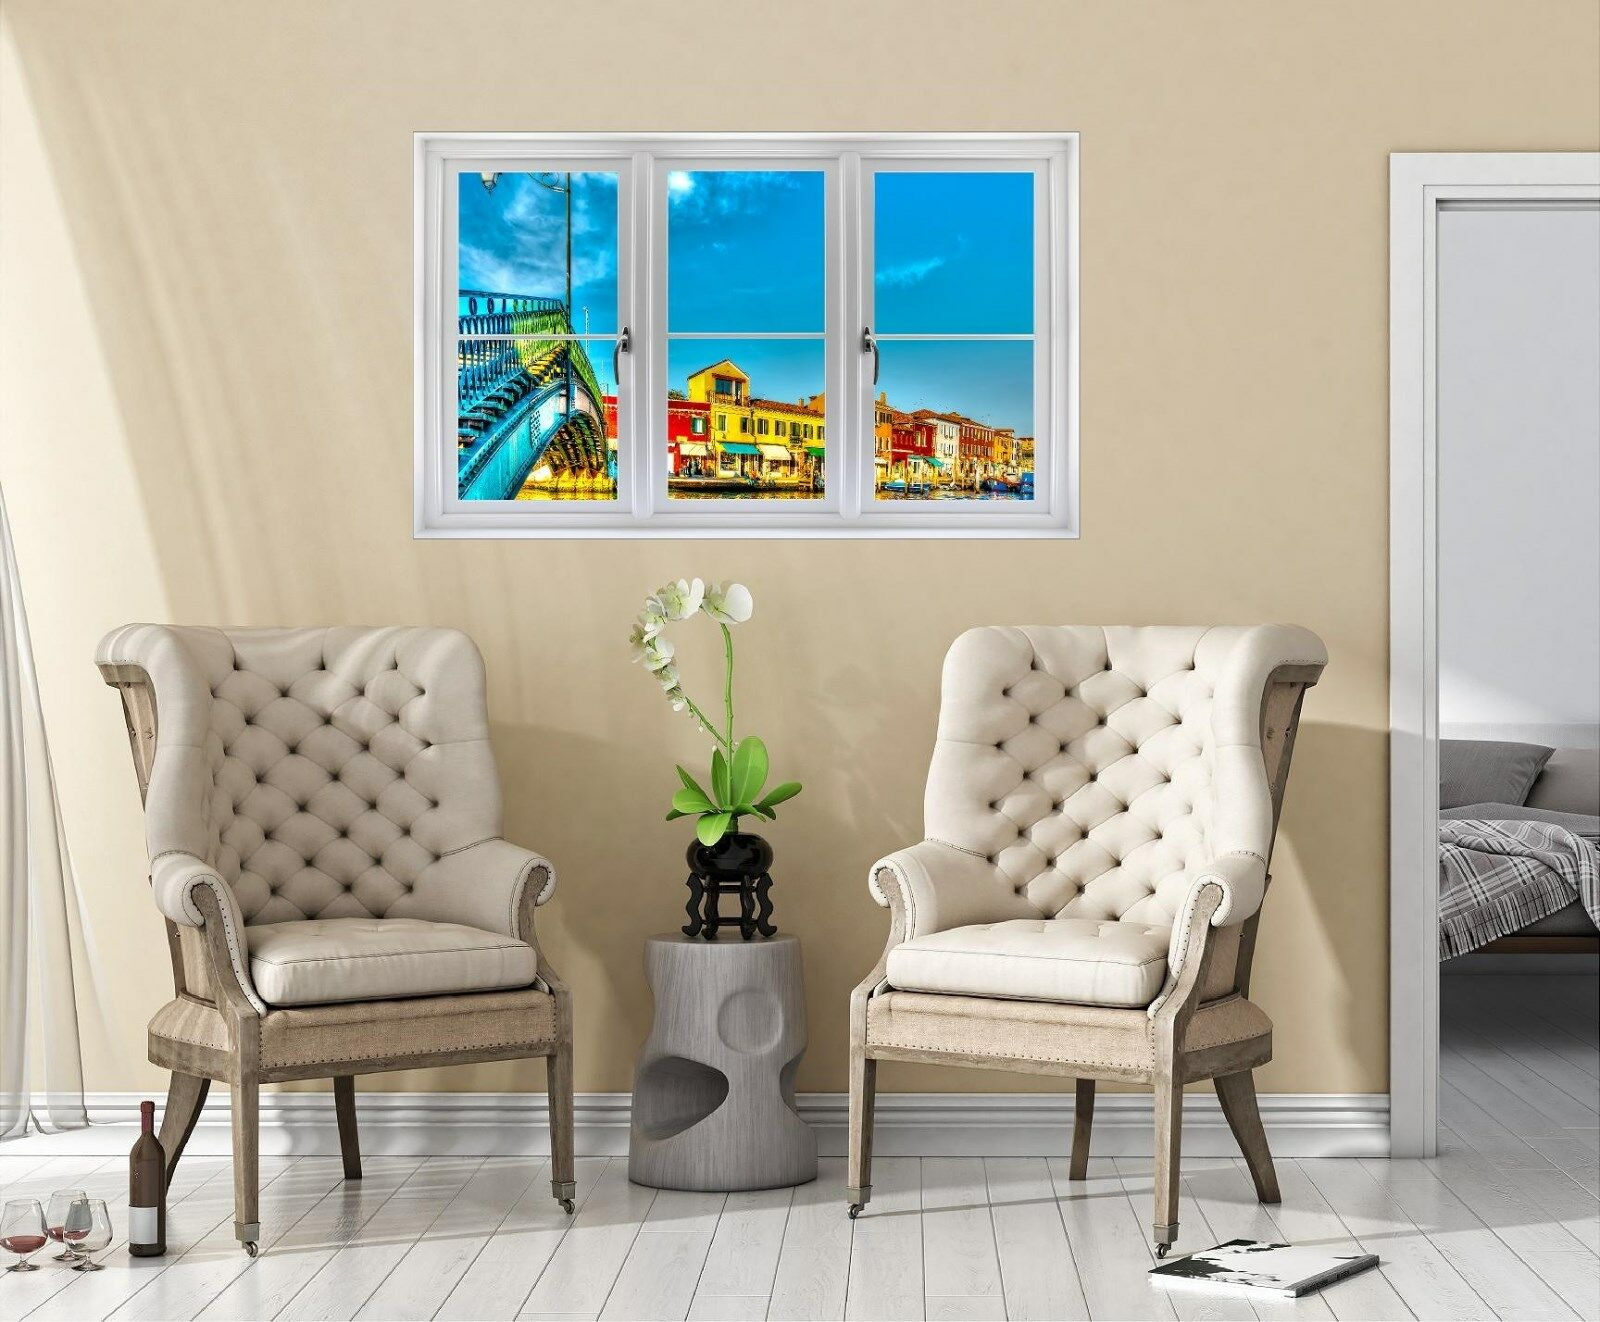 Window Landscape View MURANO ISLAND DUSK  1 CLOSED Wall Sticker Decal Graphic